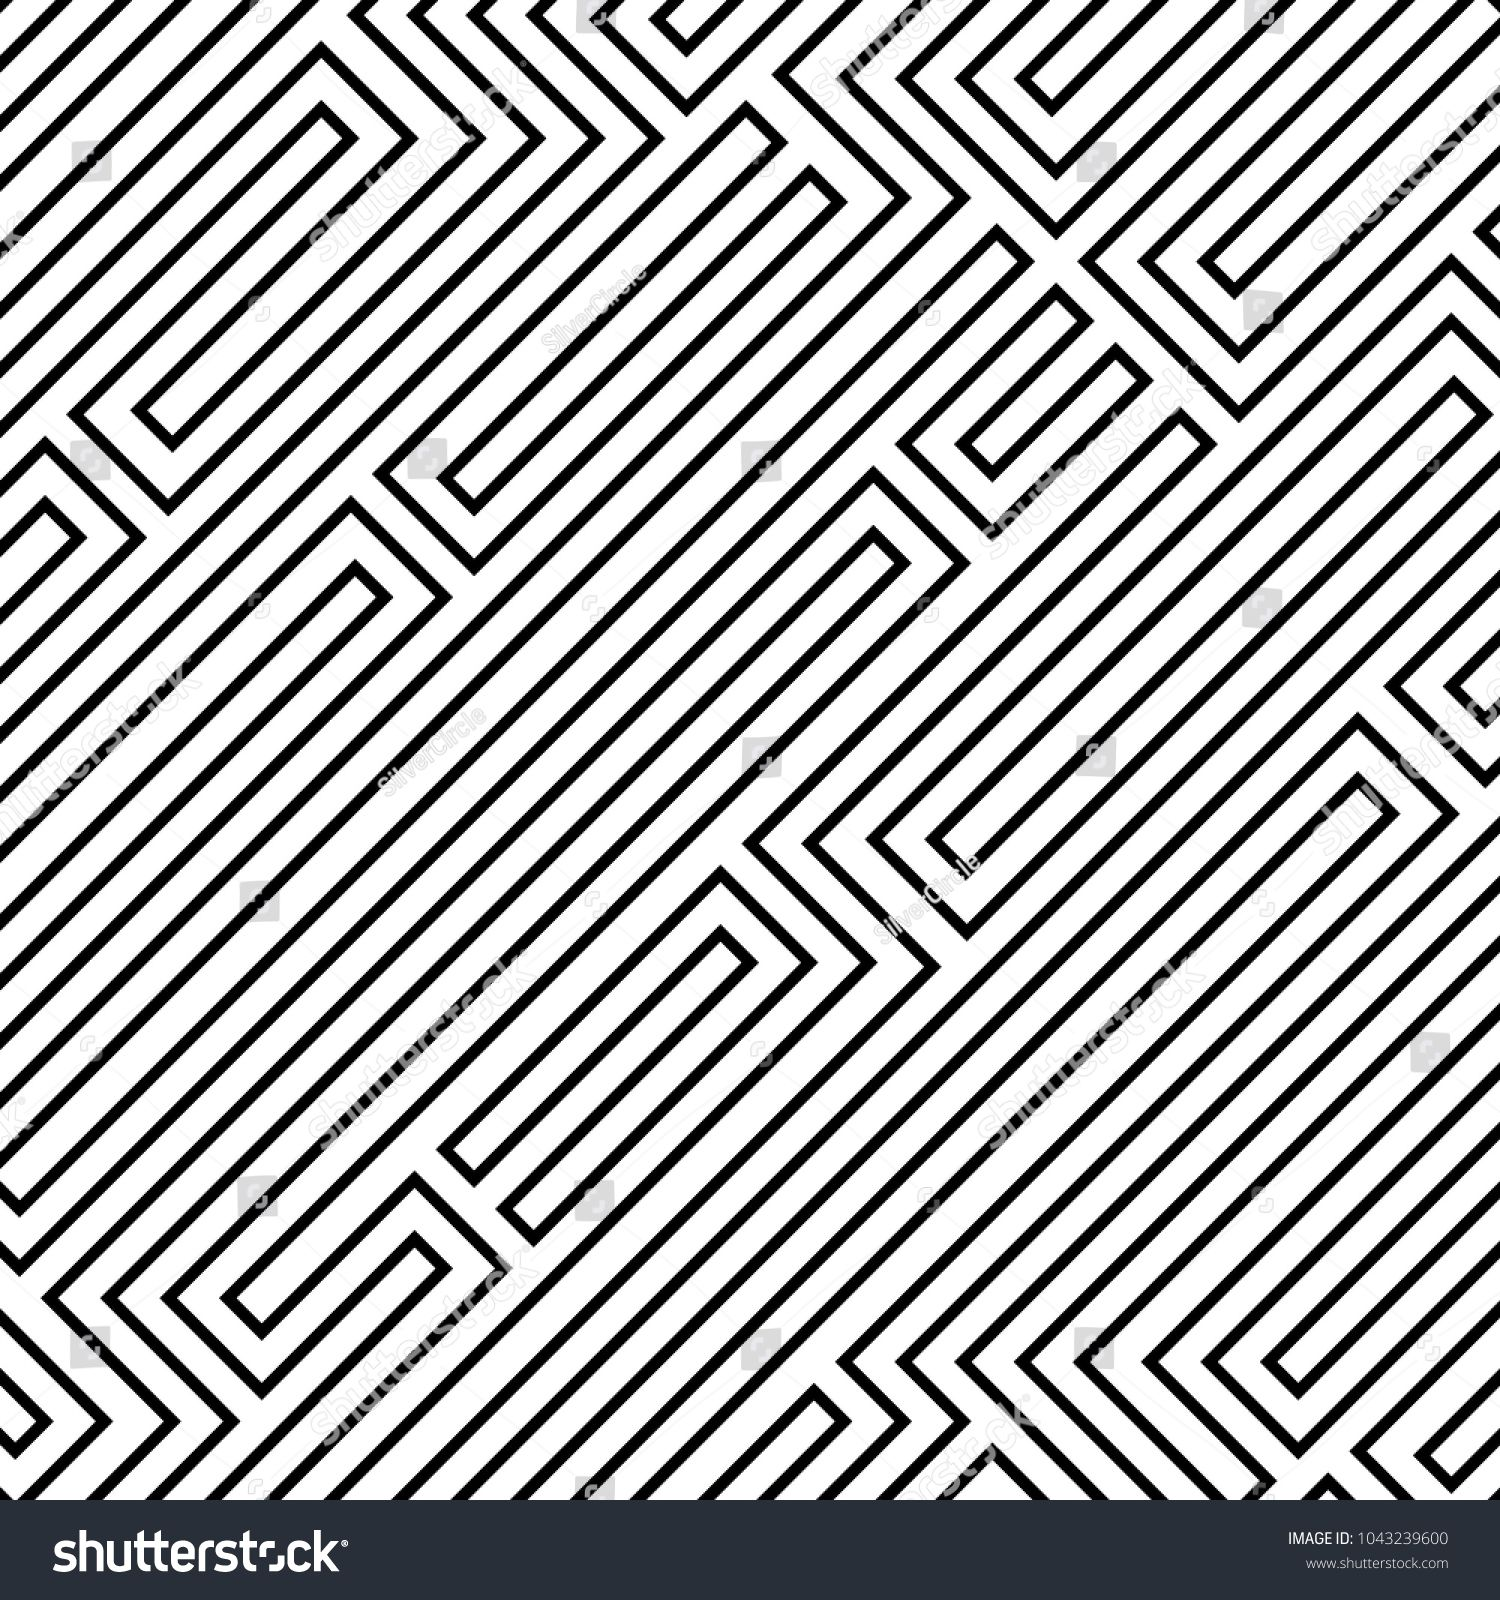 Abstract vector background design with maze mosaic texture